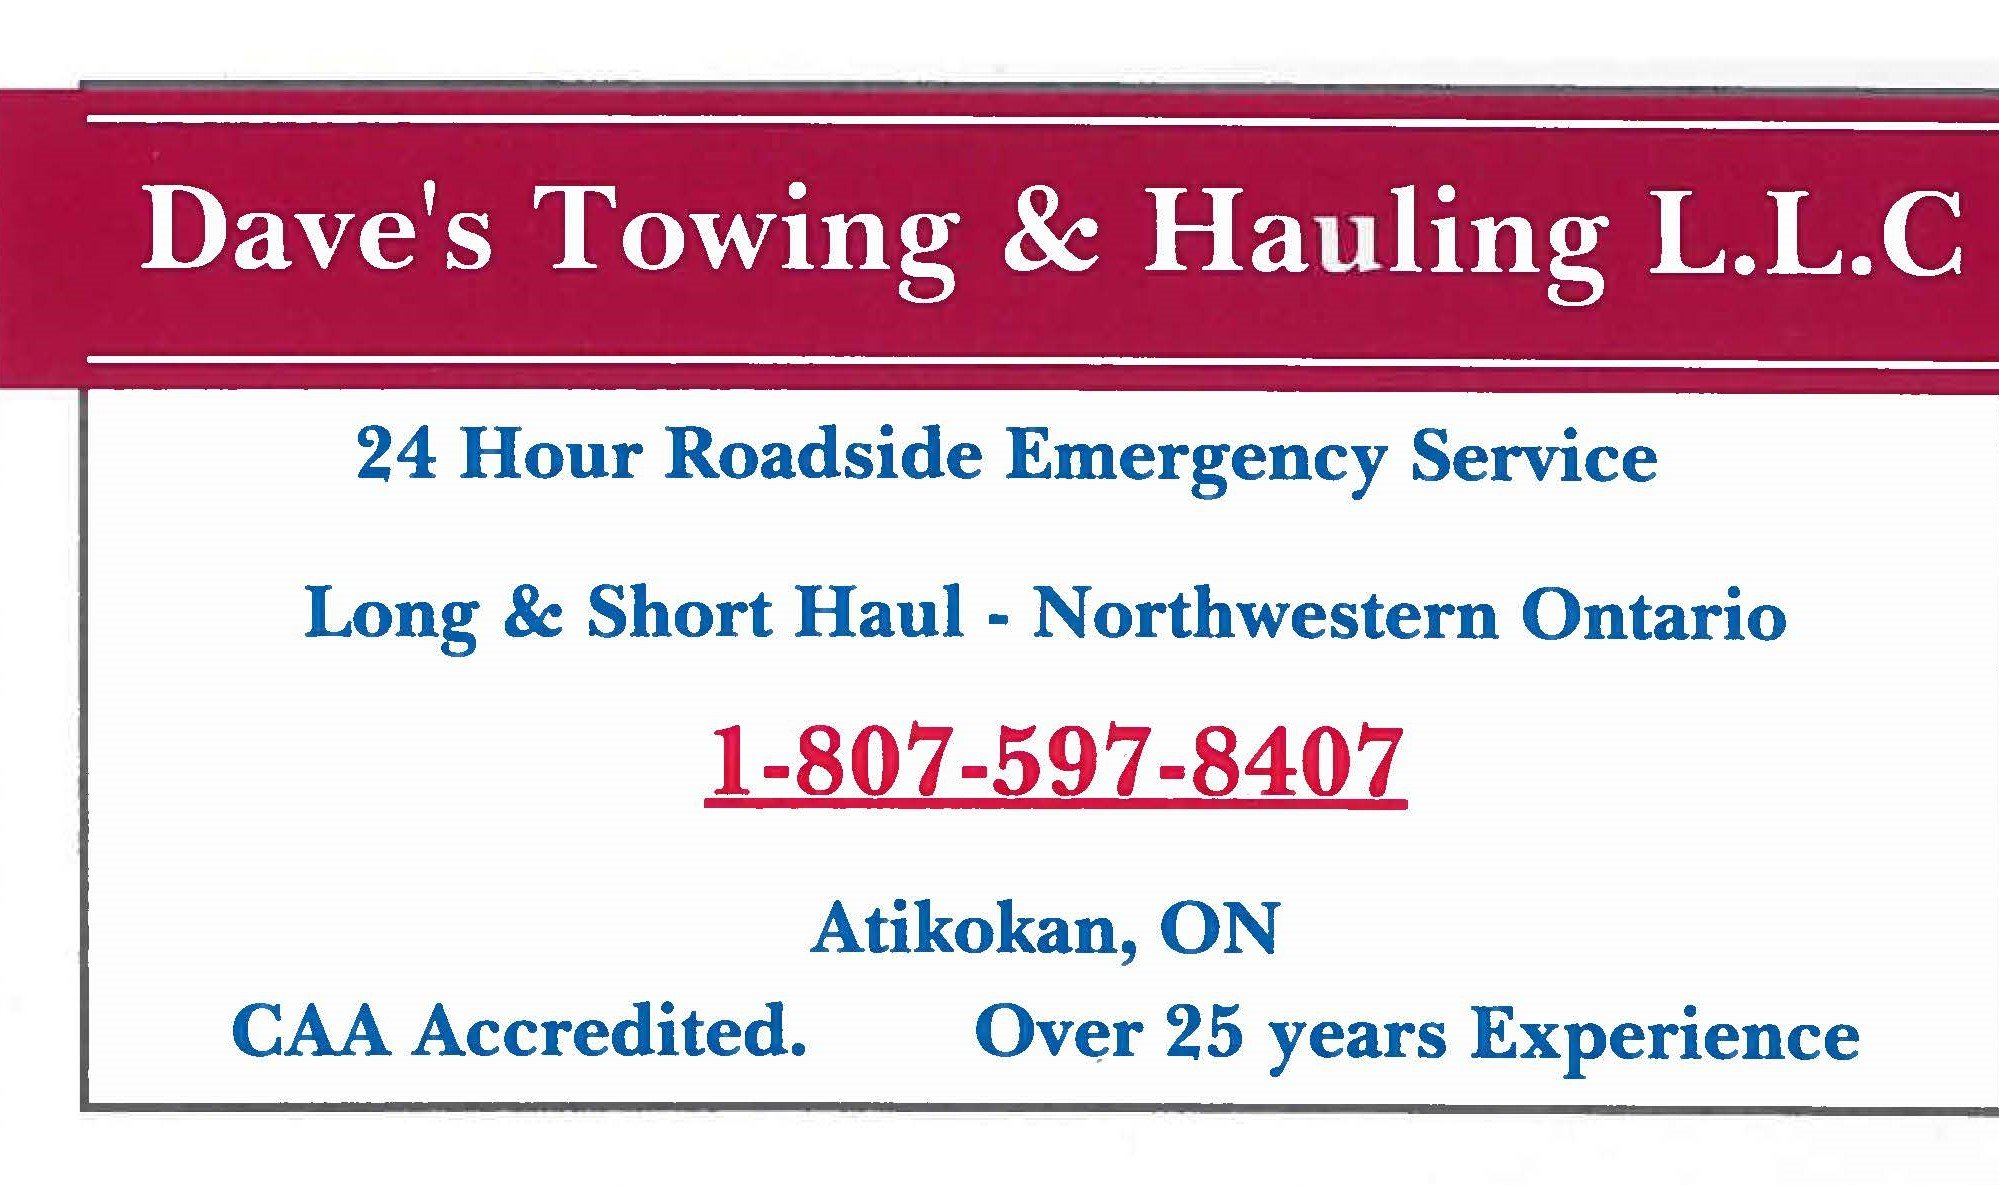 Dave's Towing & Hauling